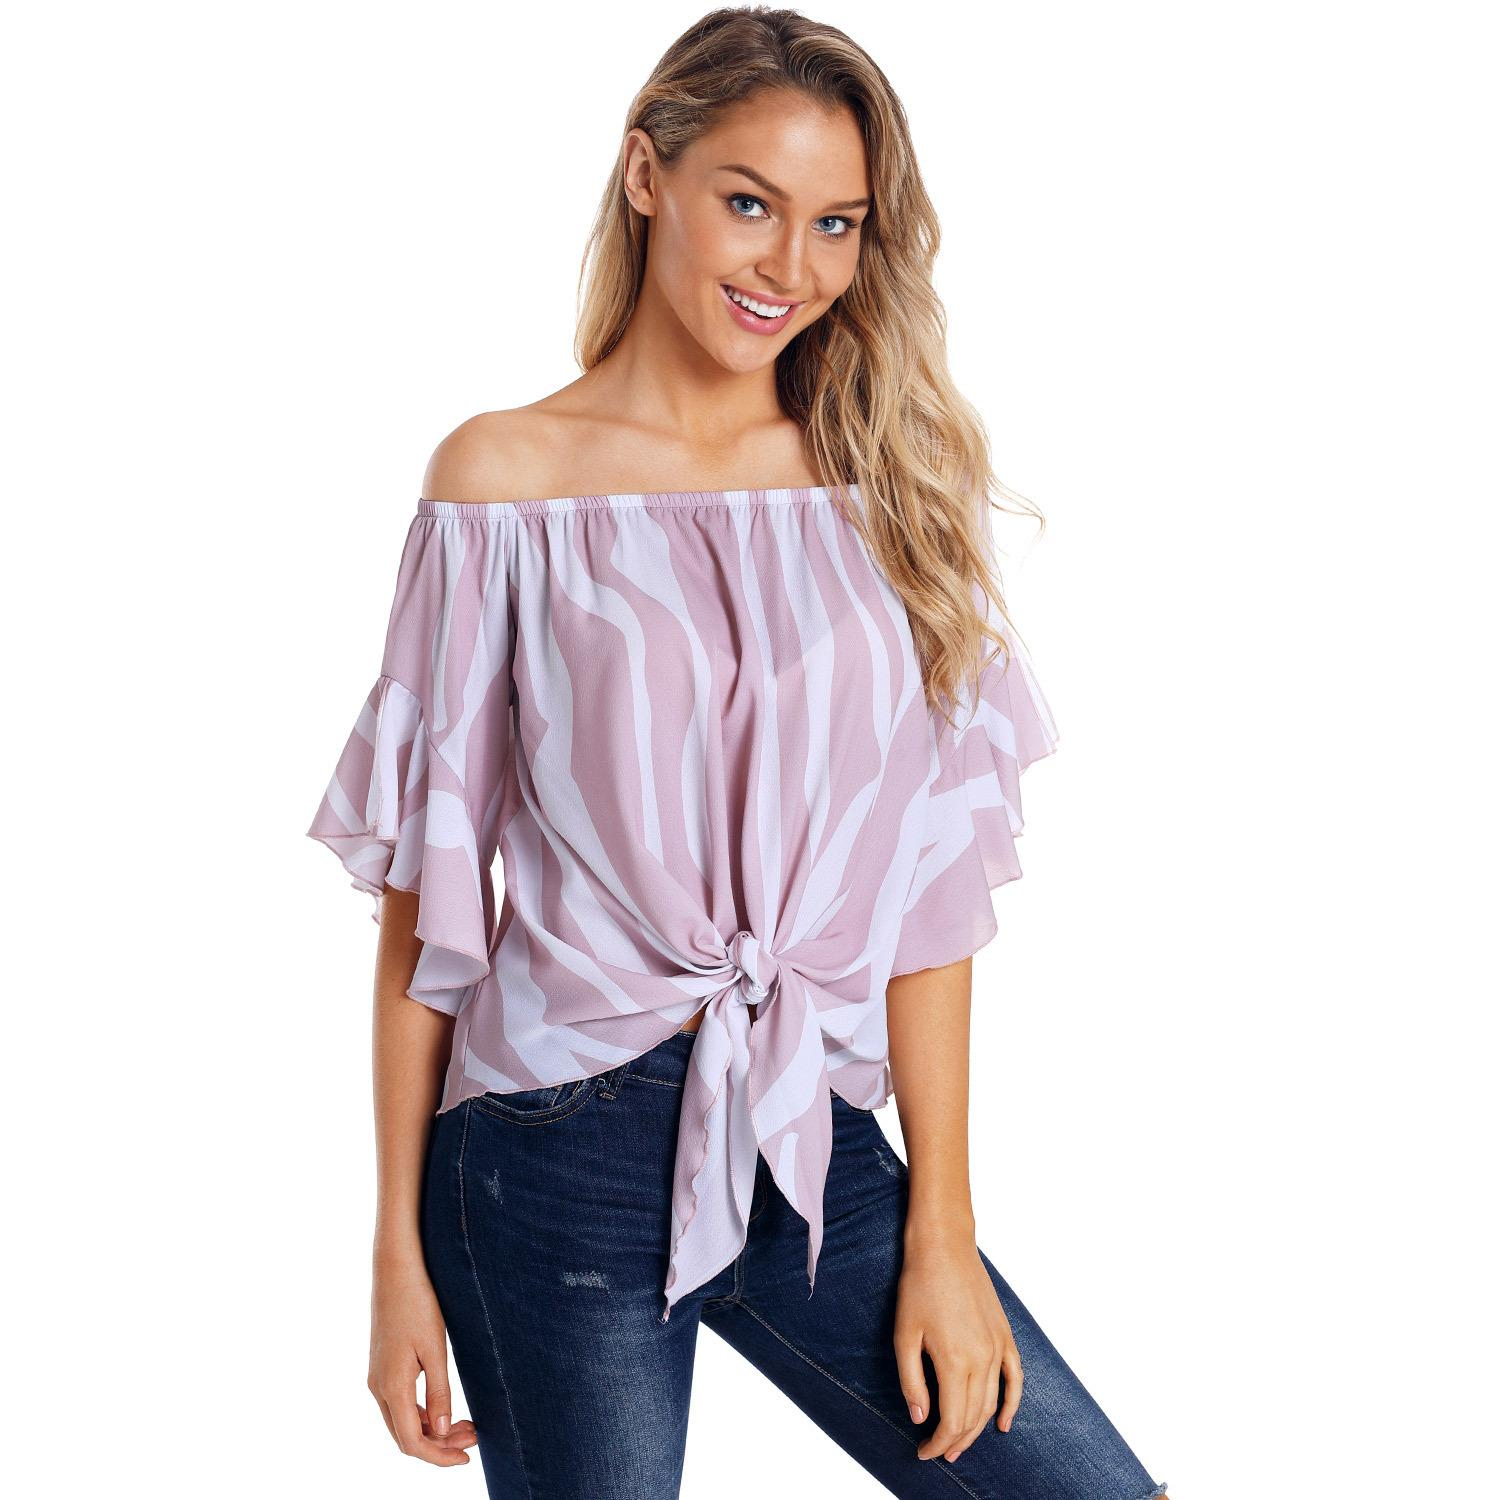 100687bf12f 2019 Women Blouse New Women S Summer Tops Chest Women Tops Collared Shirts  Nickels Women S Clothing Plus Size Shirts From Szghhcool